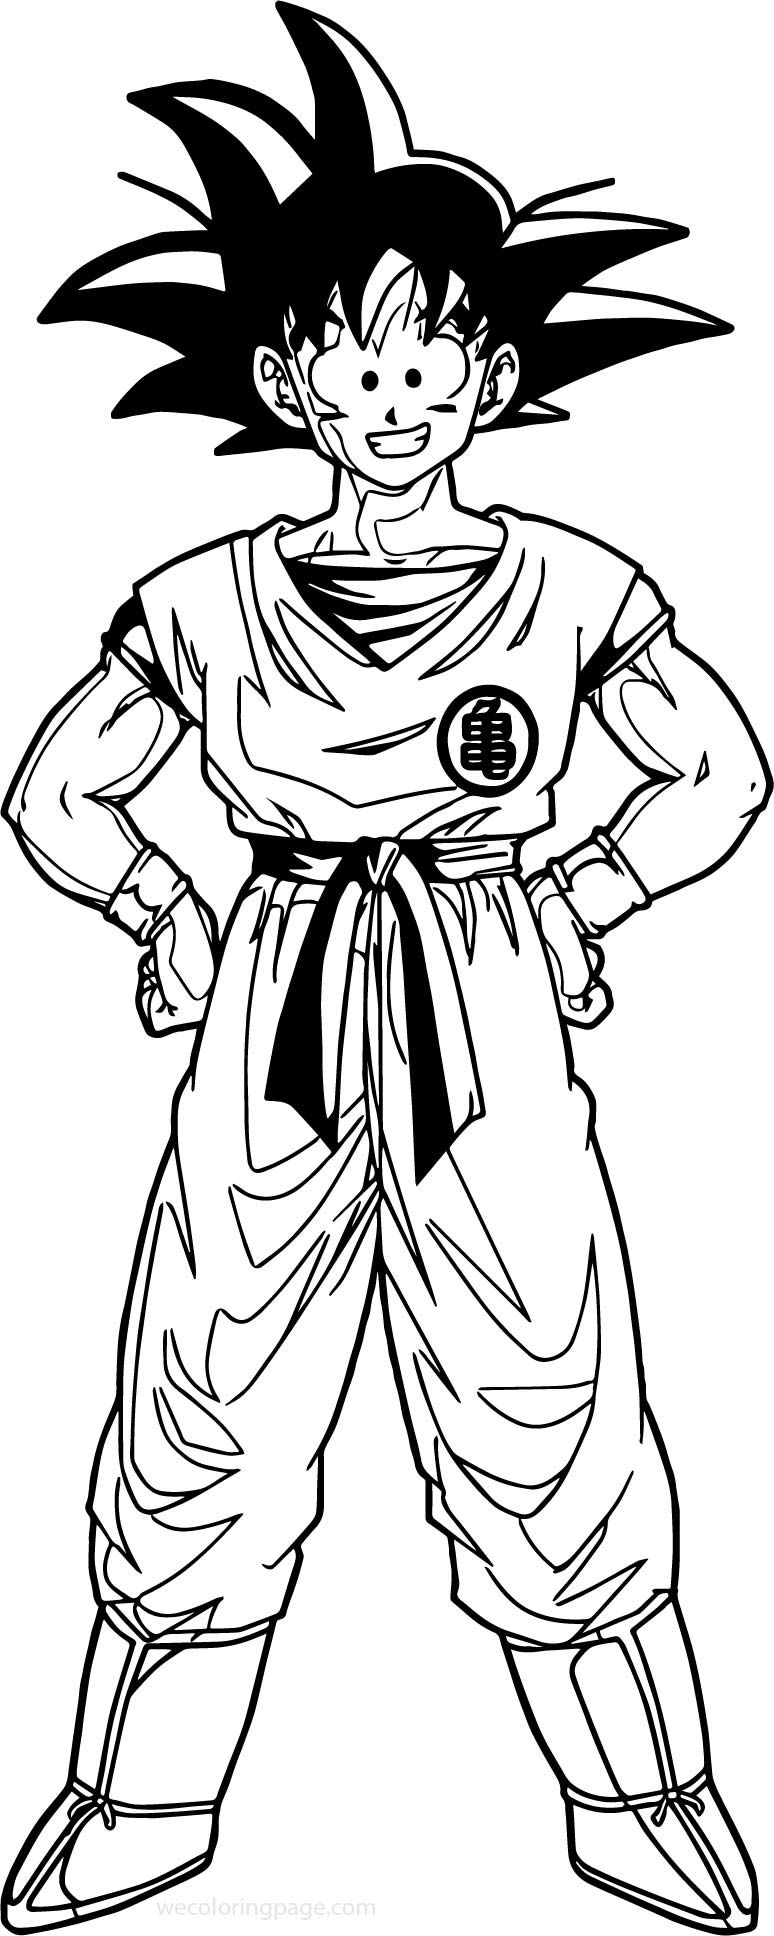 Awesome Goku Happy Coloring Page Coloring Pages Goku Coloring Sheets For Kids